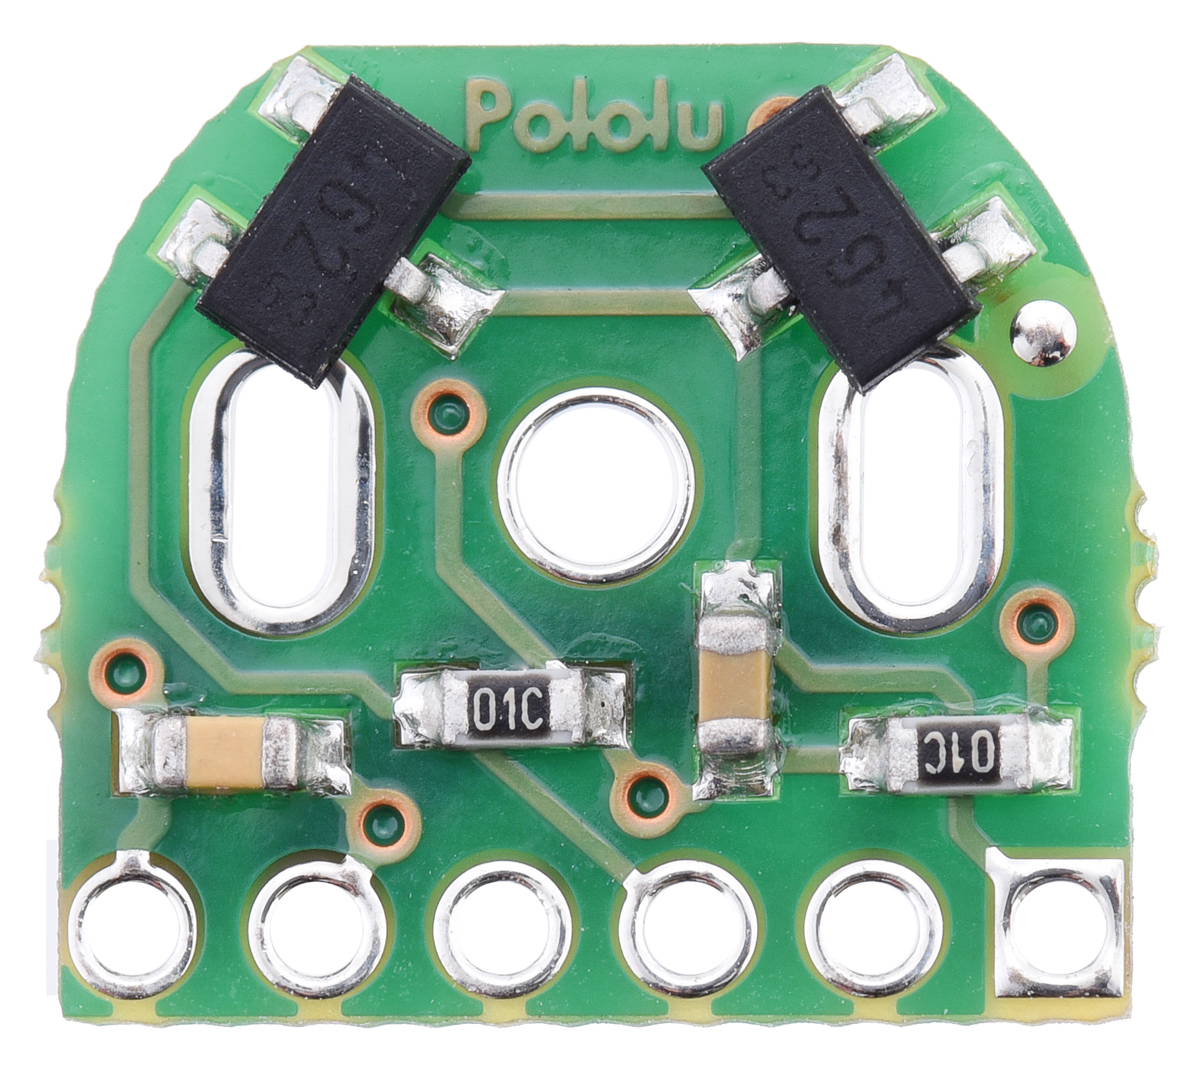 Pololu Magnetic Encoder Pair Kit For Micro Metal Gearmotors 12 Guide To The Applications Of Hall Effect And Reed Switch Sensors Hpcb Compatible